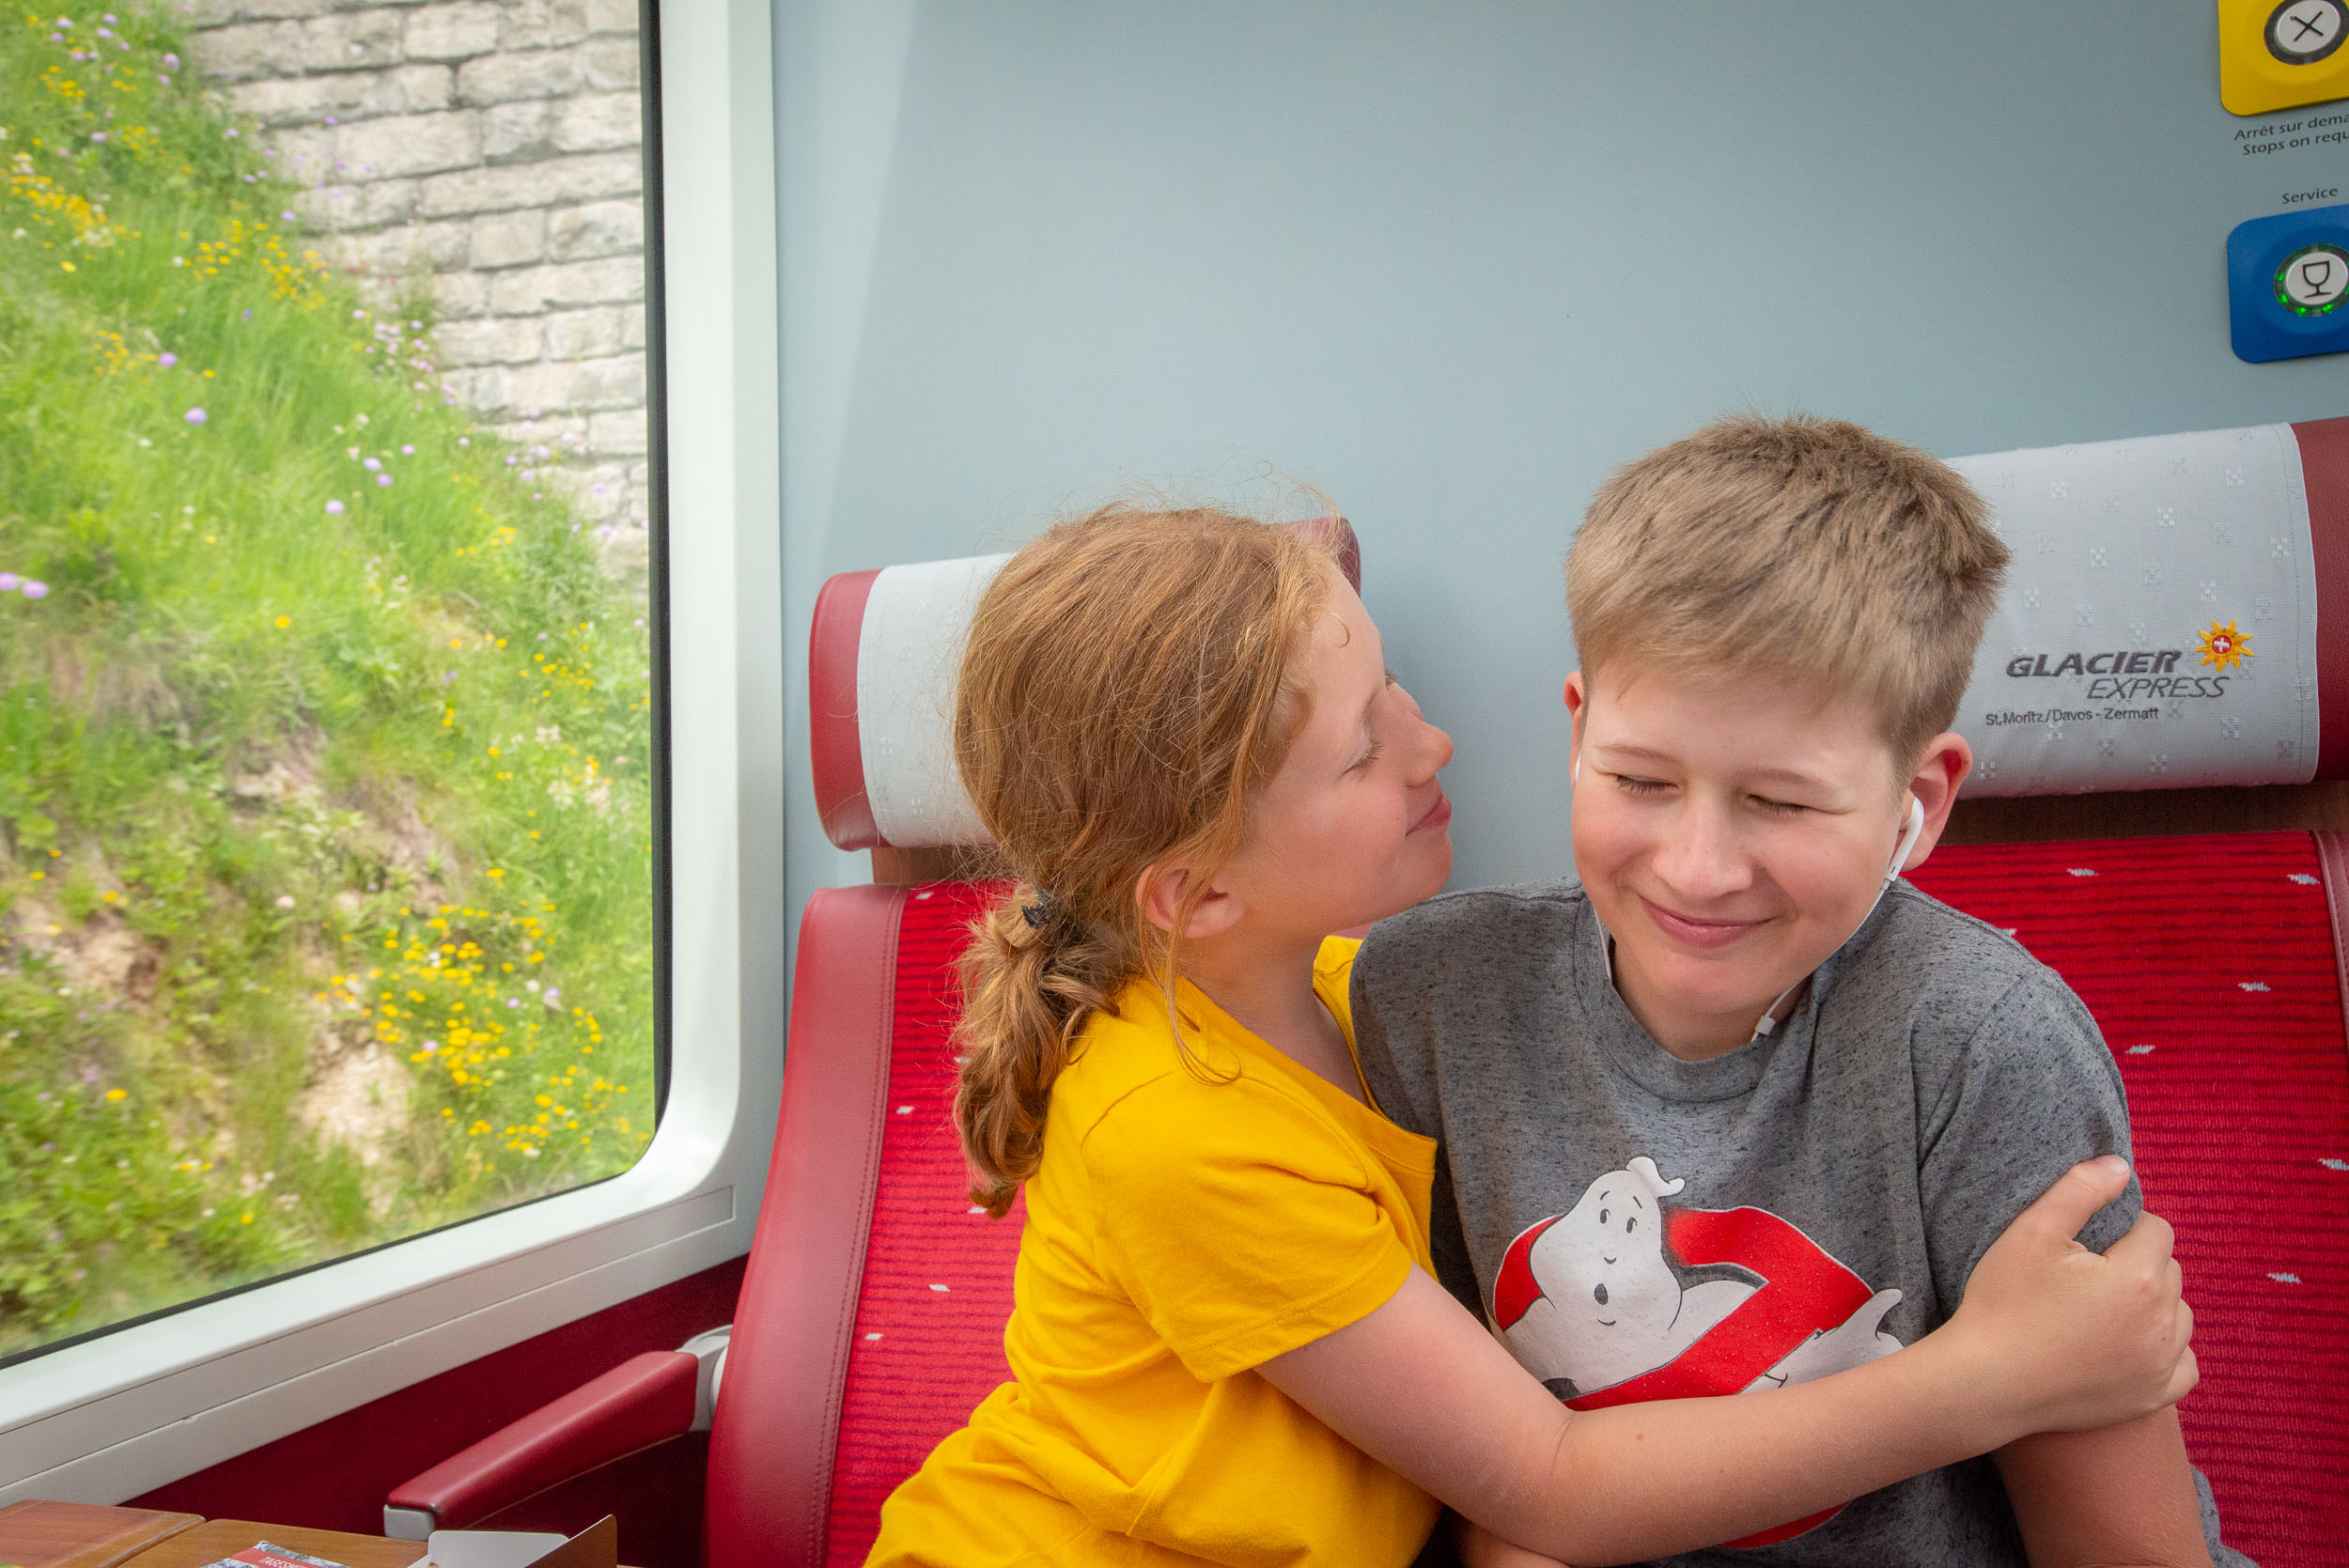 These children grew even closer than before on this trip, and the Glacier Express was no exception. More on that another time.